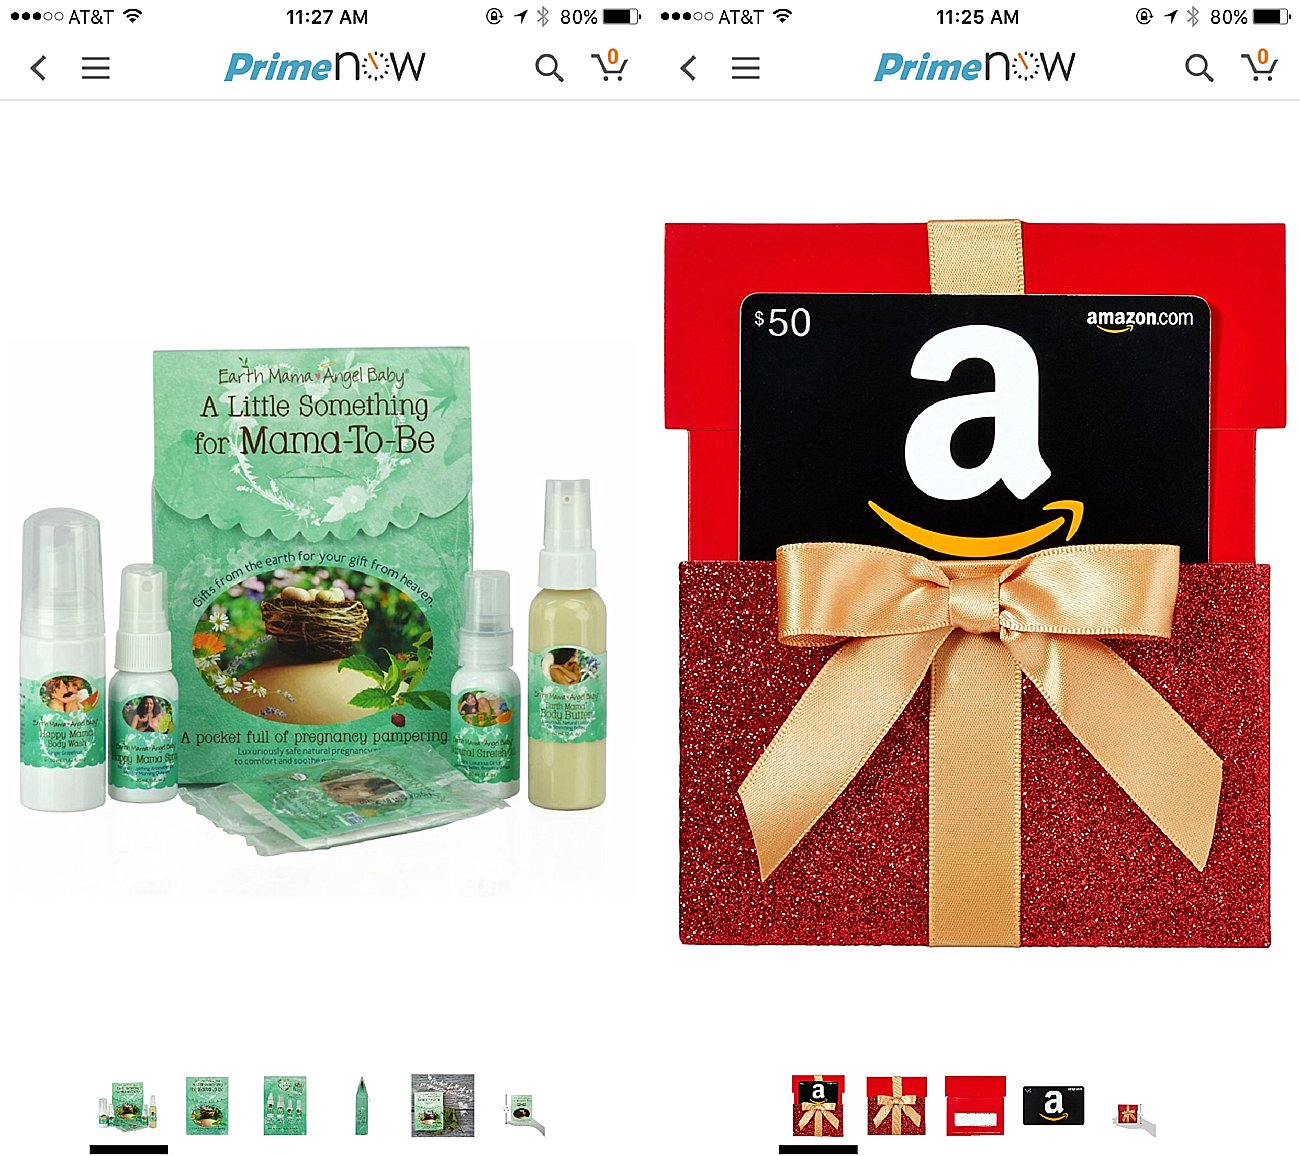 Amazon Prime Now - the perfect gift for mom this mother's day plus last minute gift ideas from Amazon Prime Now (7)